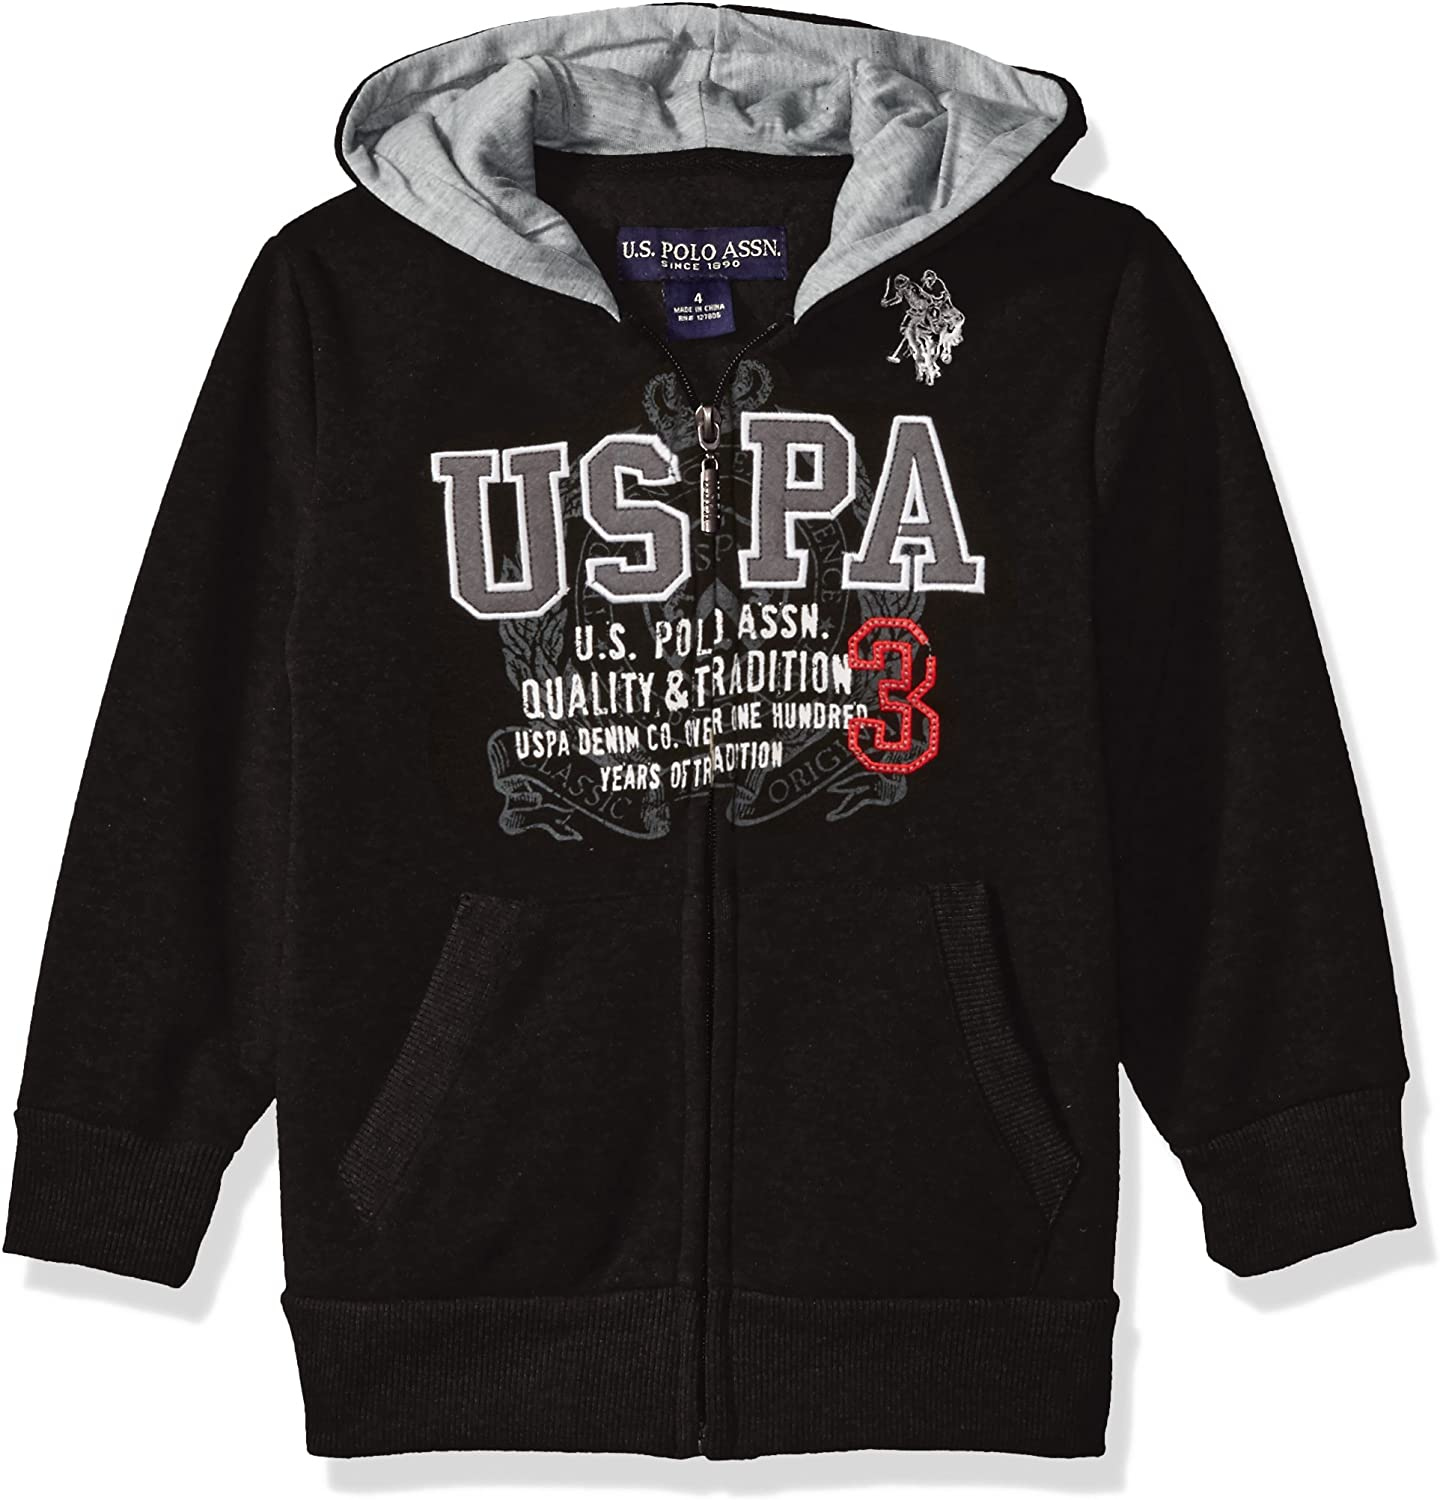 Boys Fleece Hooded Jacket U.S Polo Assn